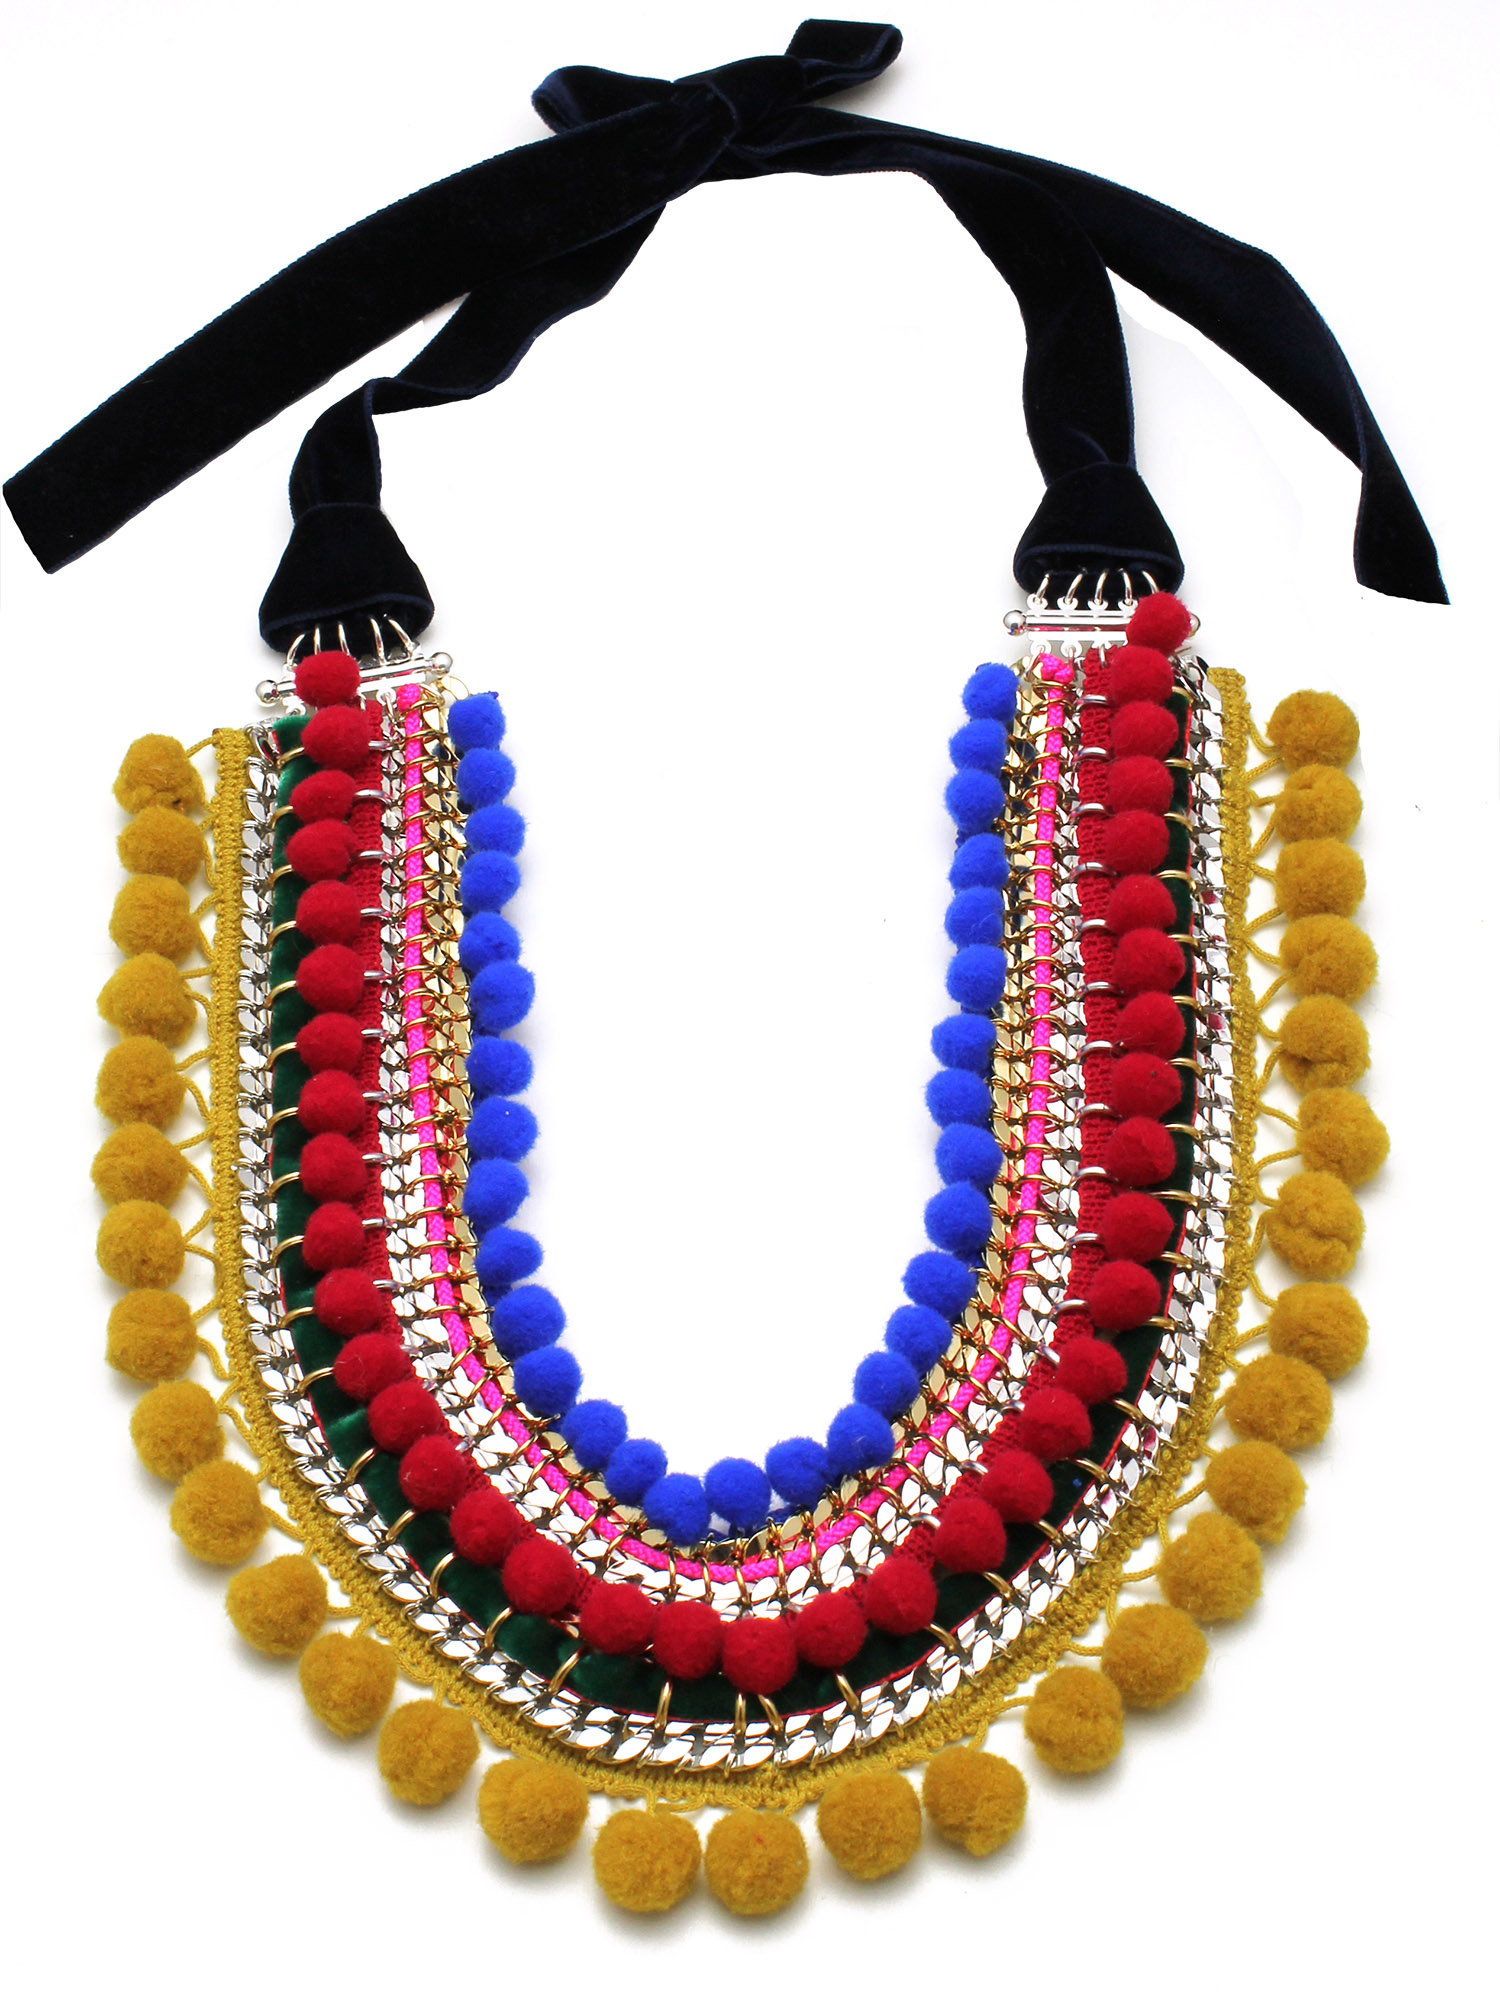 047 - Bright Pom Pom Necklace.jpg